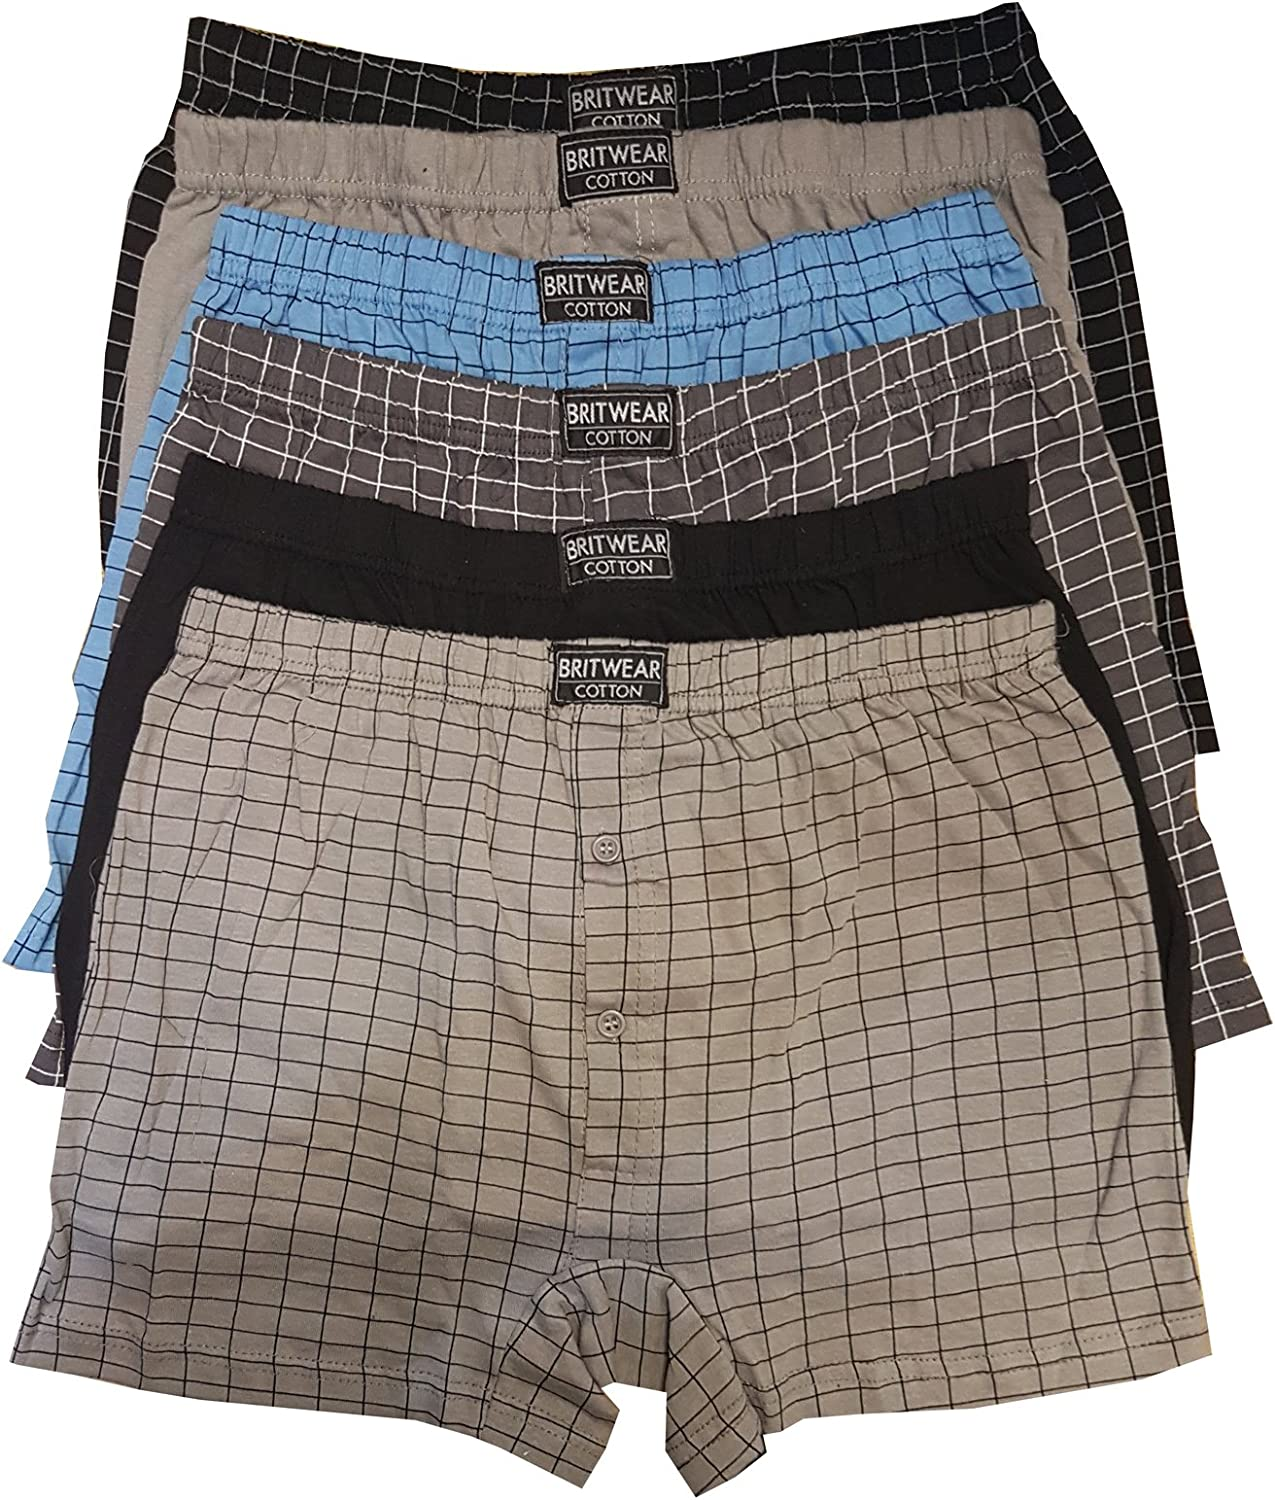 12 X Mens Button Fly Natural Cotton Jersey BOXER SHORTS TRUNKS LARGE SIZE WHITE